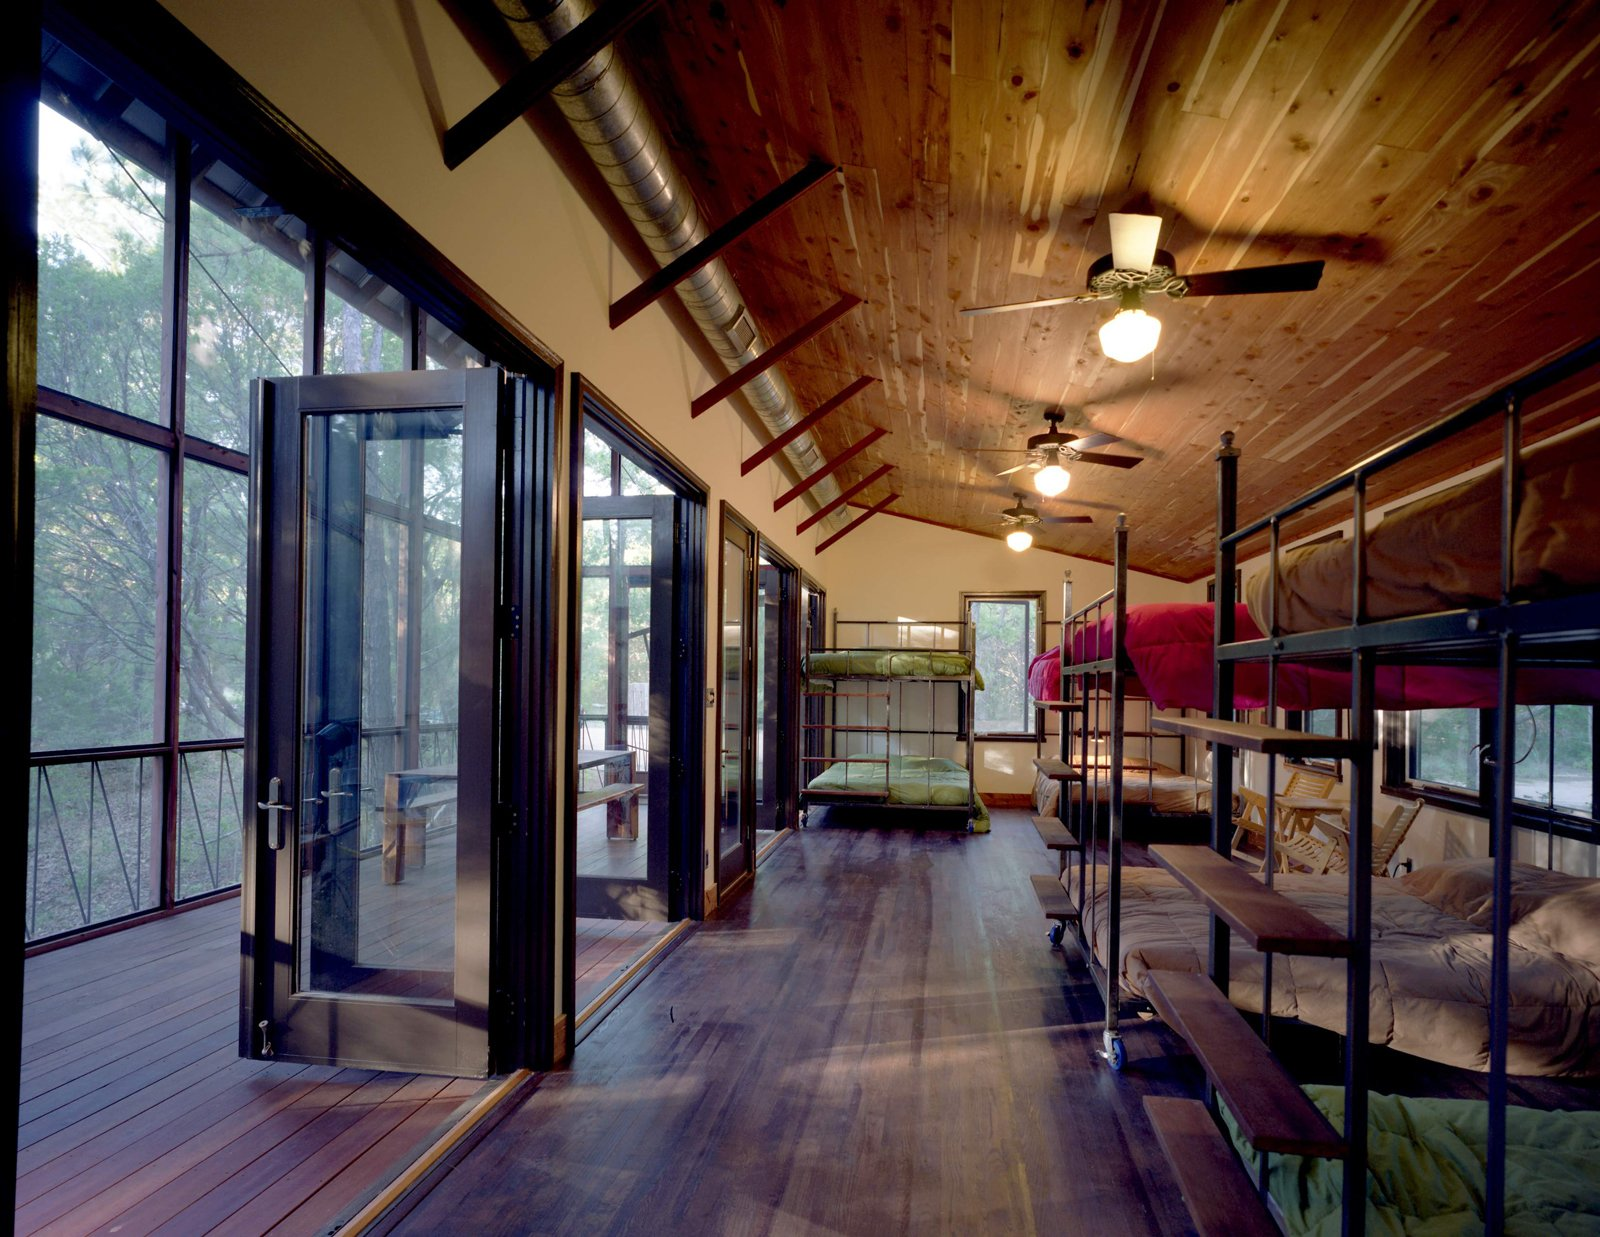 Panton placed several custom-made queen-size steel-and-wood bunk beds inside the bunkroom. All the beds are on wheels and fit through the double-side door openings, so they can be easily rolled into the porch for sleeping. Complementing the locally milled, insect-resistant cedar bunkroom ceiling are floors of purple-stained white oak (bunkroom) and the especially durable Brazilian Tigerwood (screen porch). Texas Bunkhouse by Erika Heet